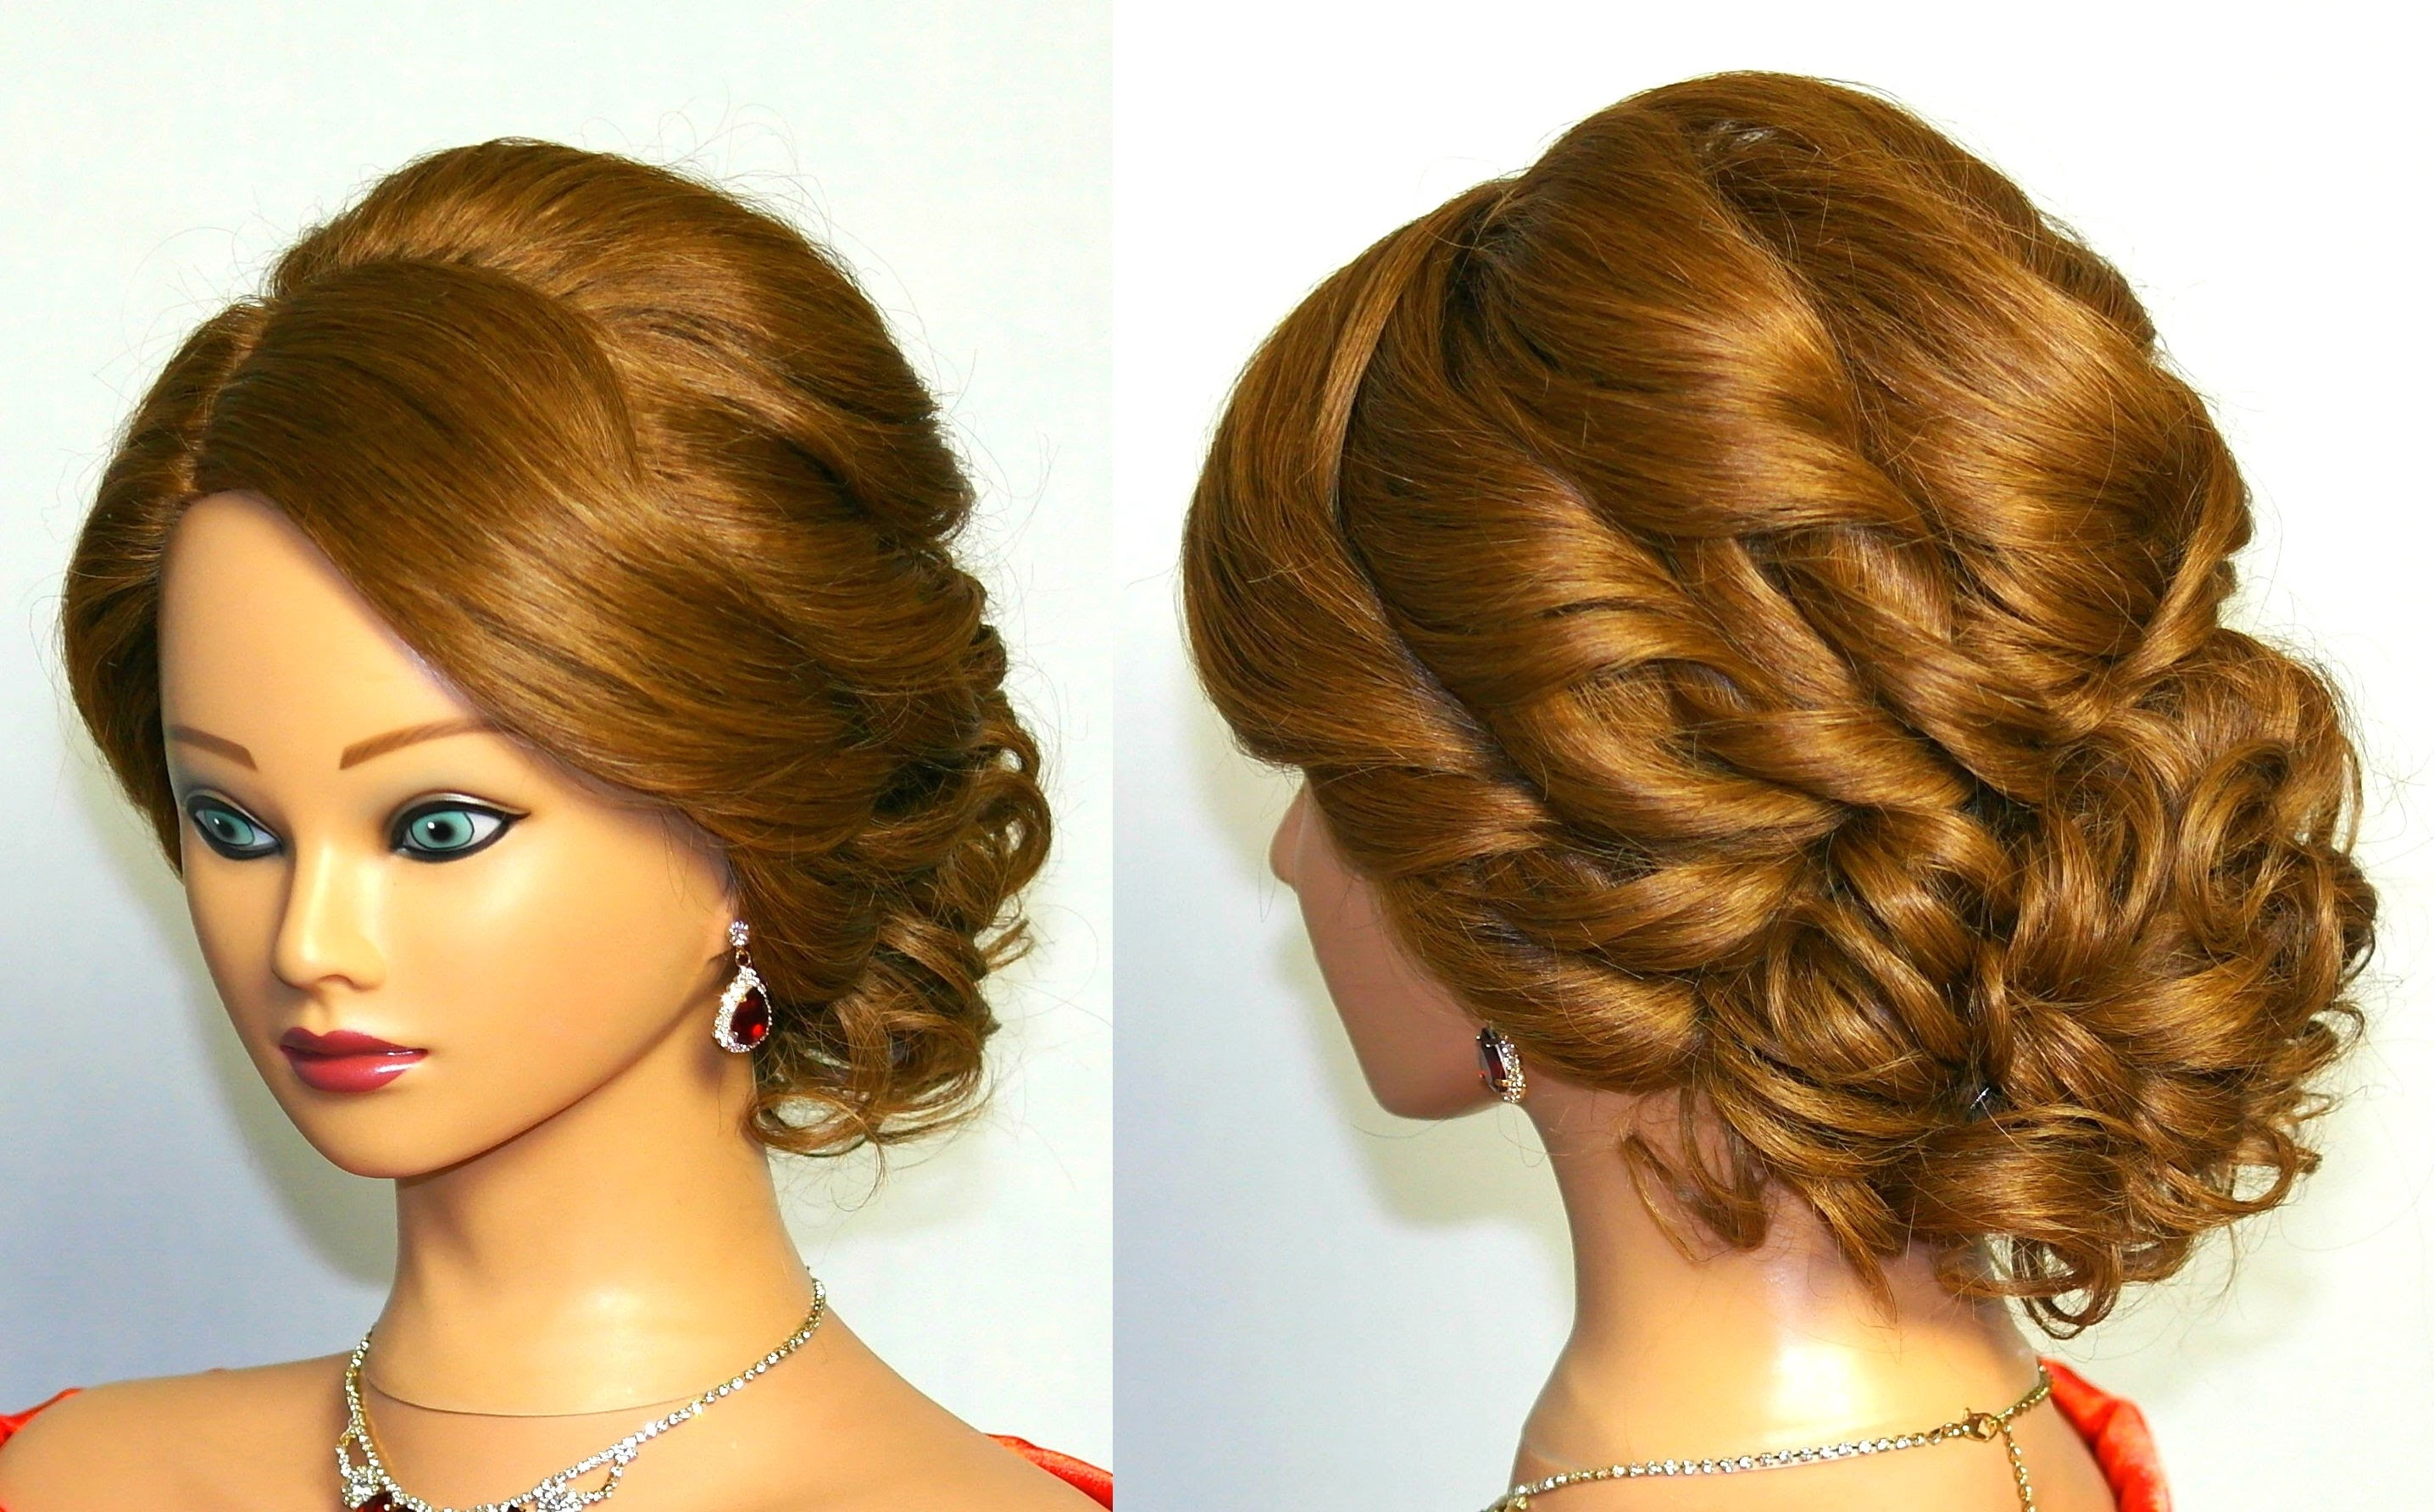 Bridal Curly Updo. Hairstyle For Medium Hair (View 4 of 15)